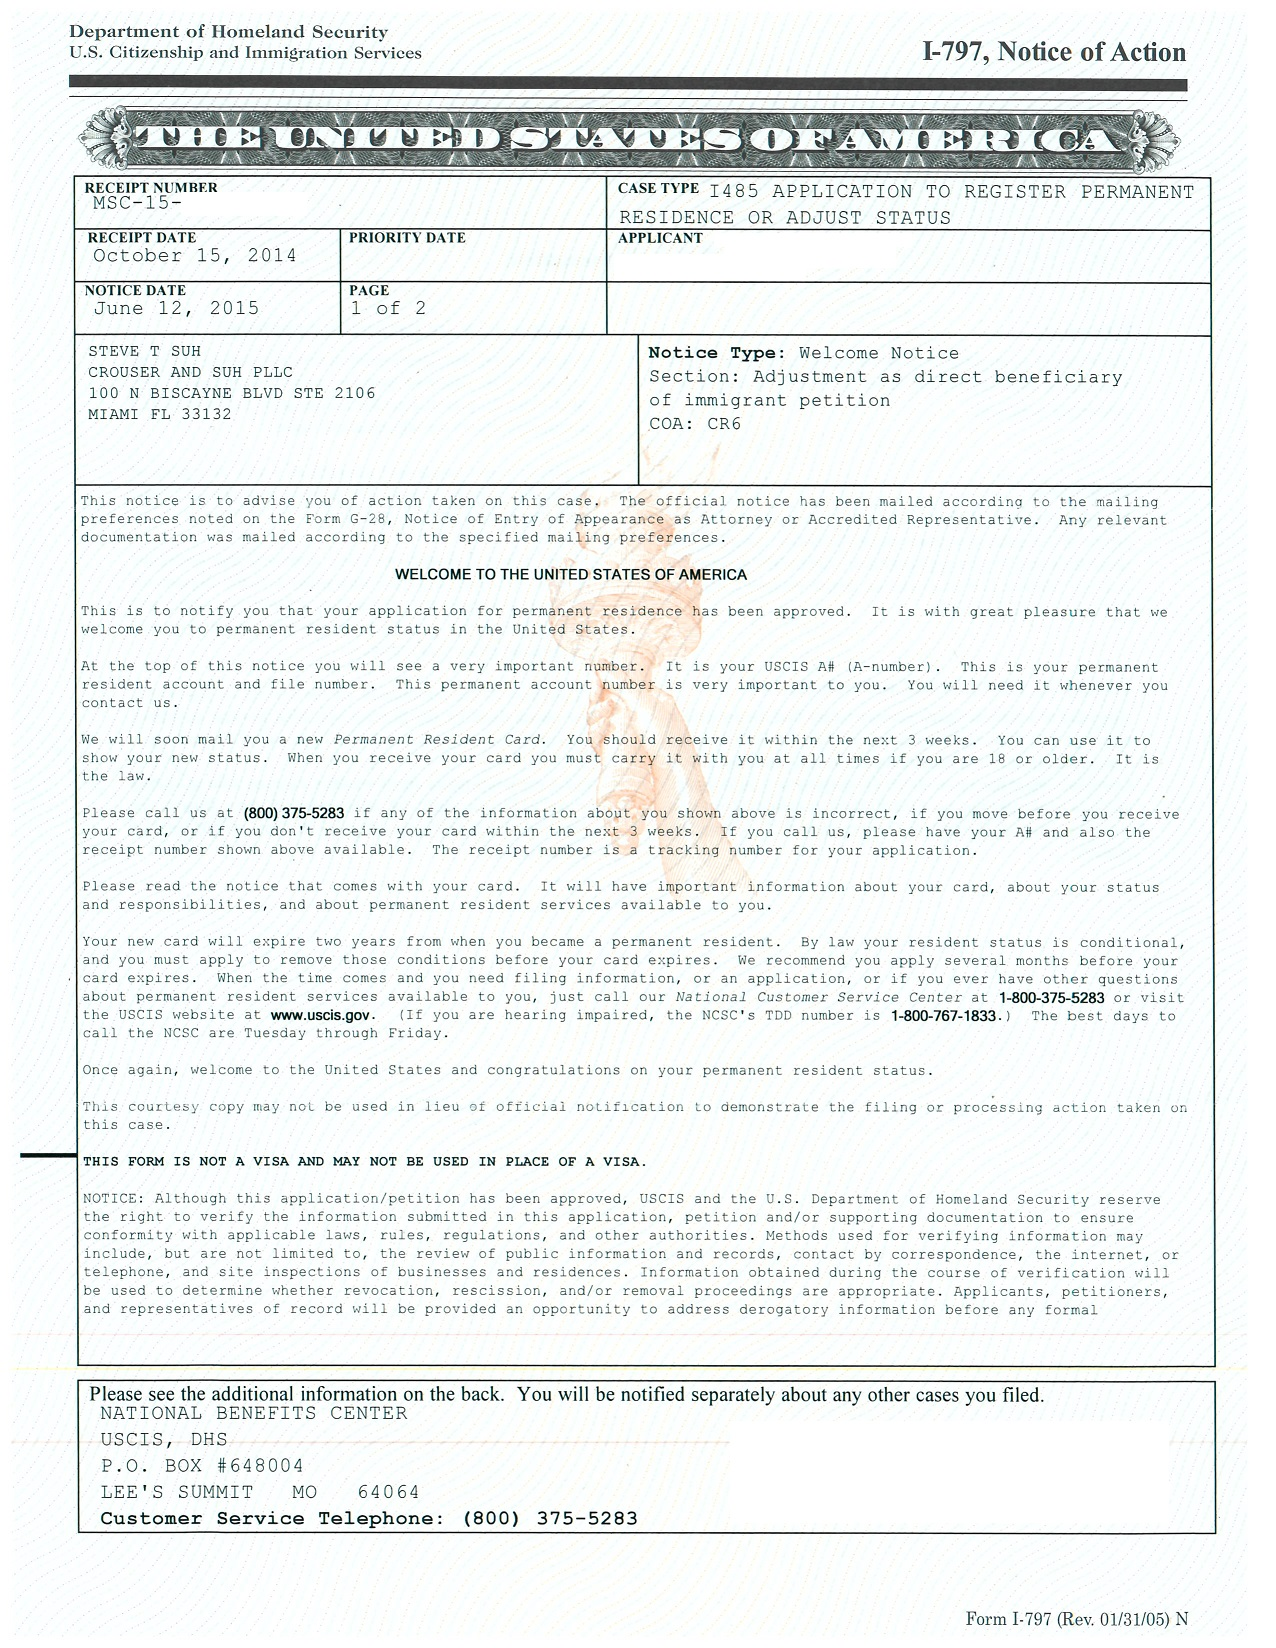 marriagepetitionapprovalnotice06122015.jpg